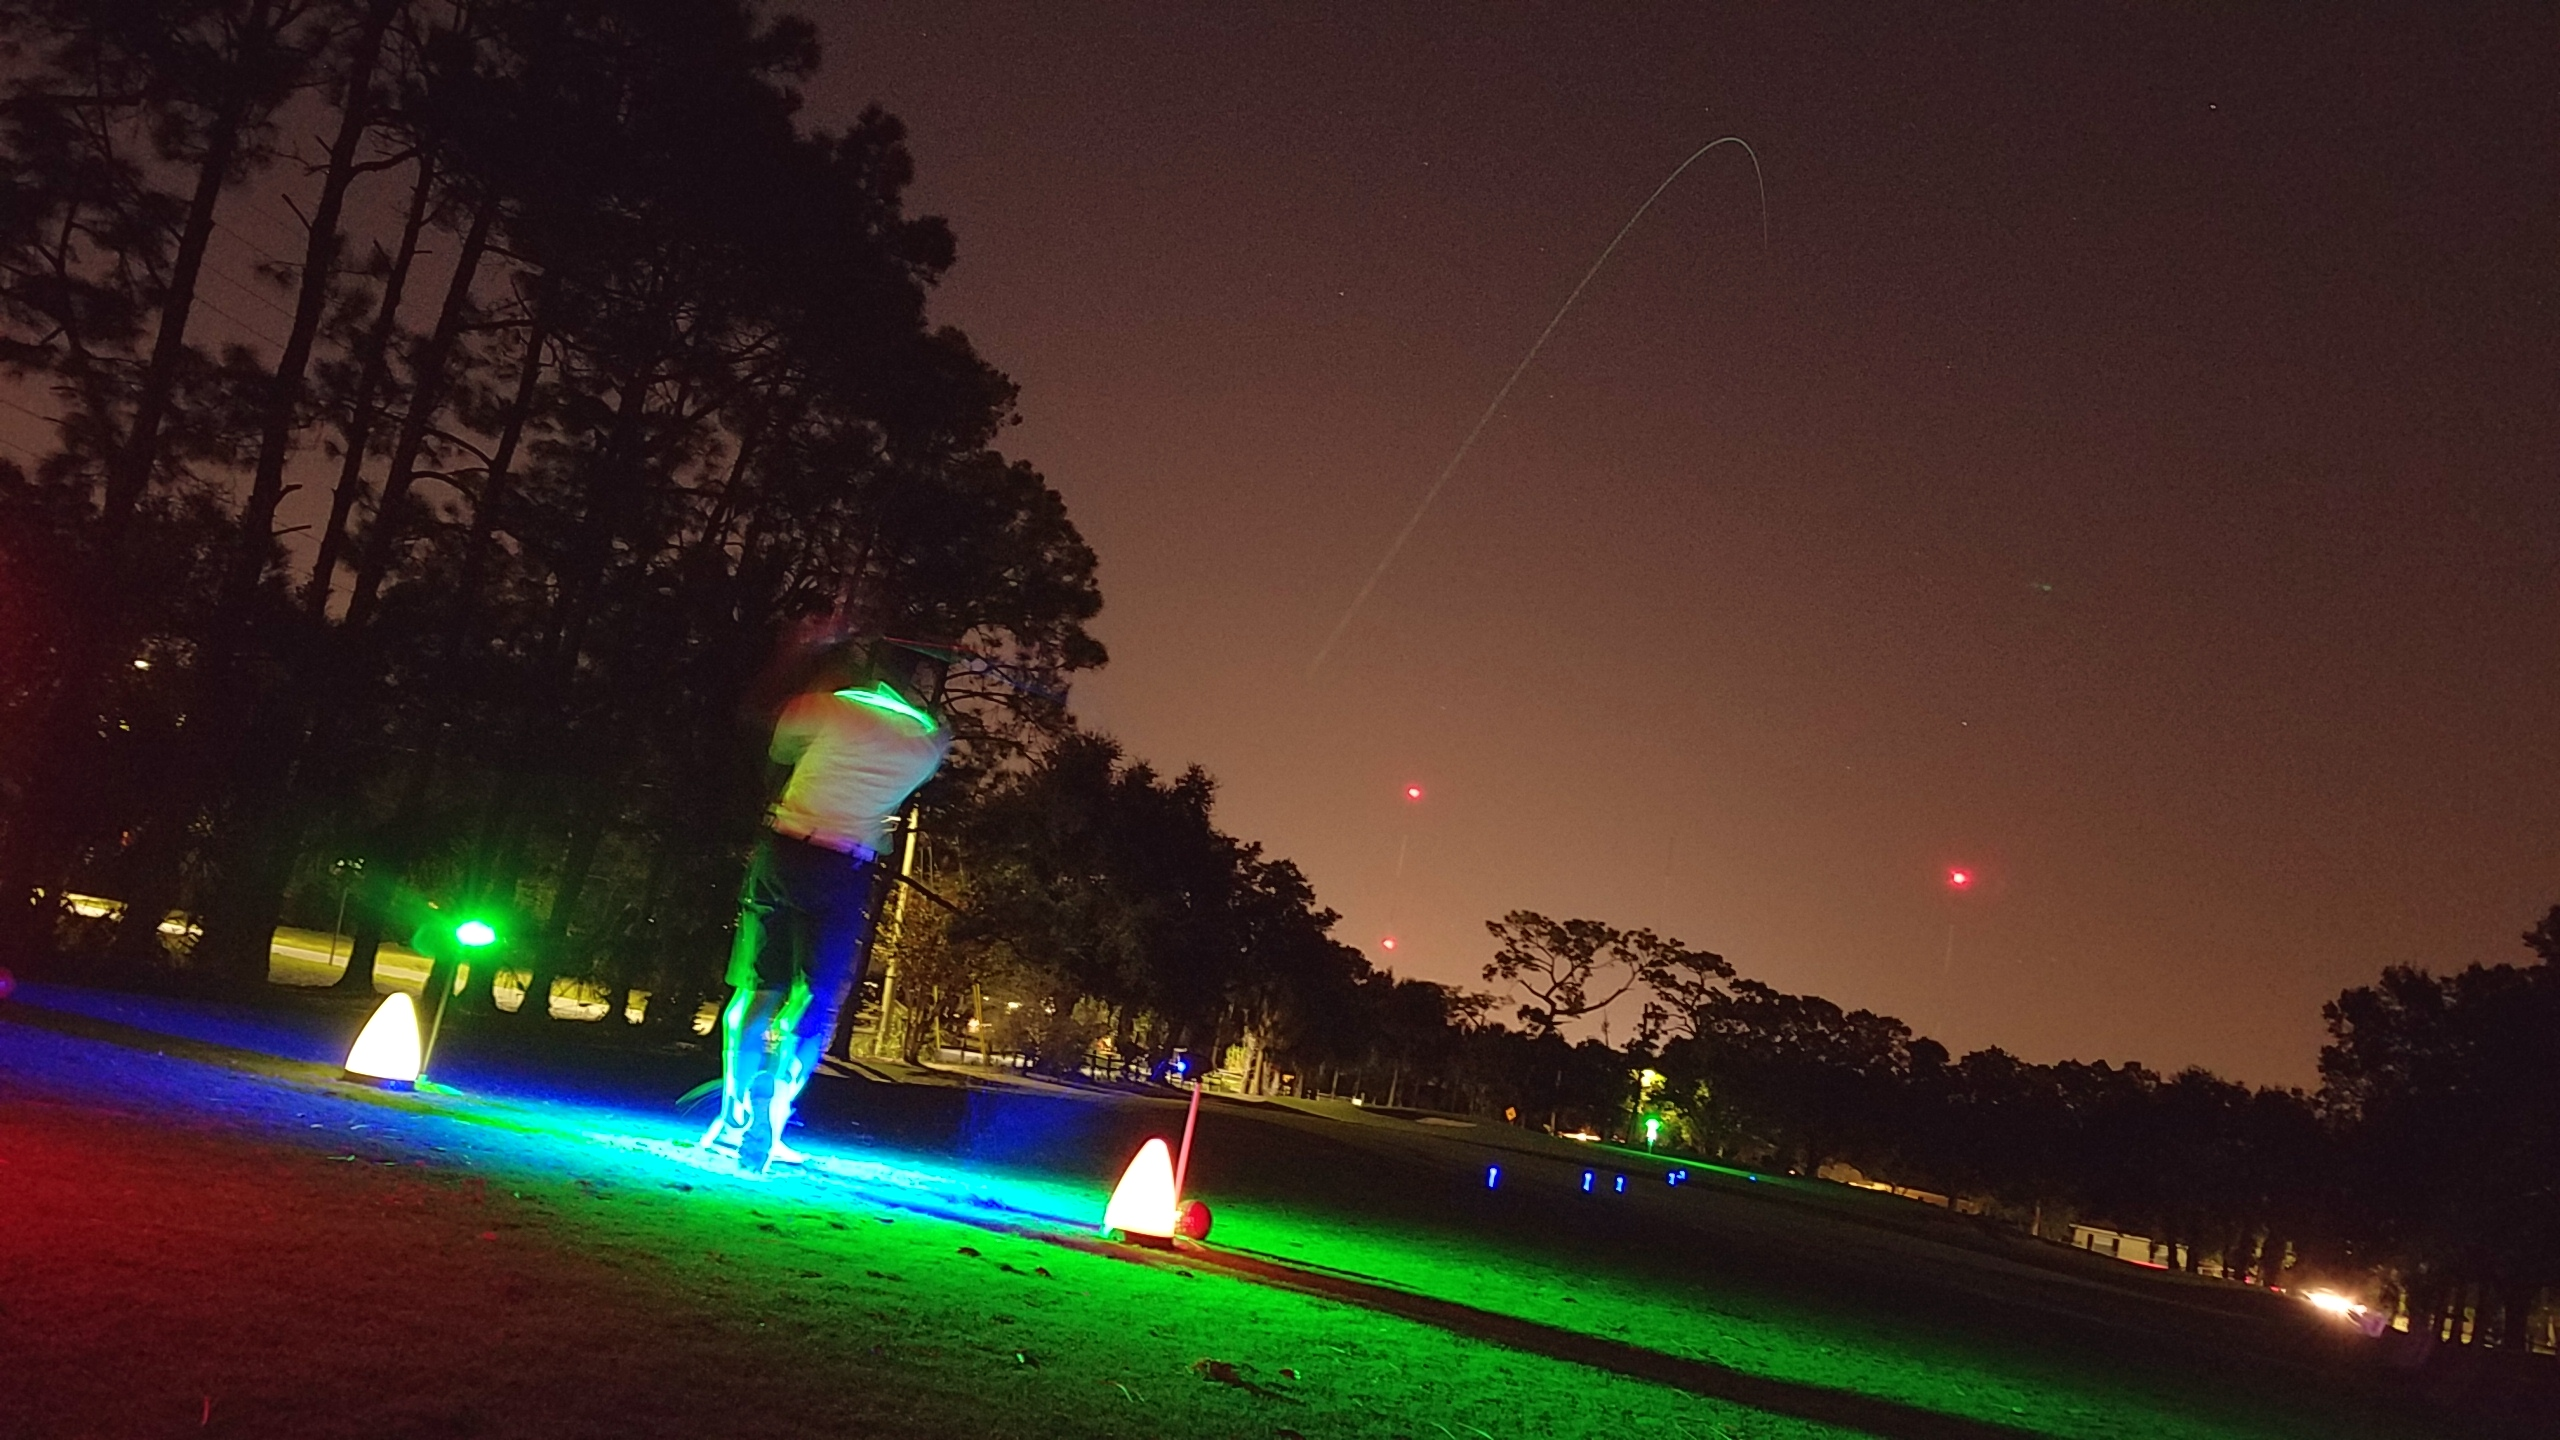 Playiing in the Dec 17th Night Golf Nationals Qualifier #1 at Dubsdread Golf Course, Orlando, Floirda